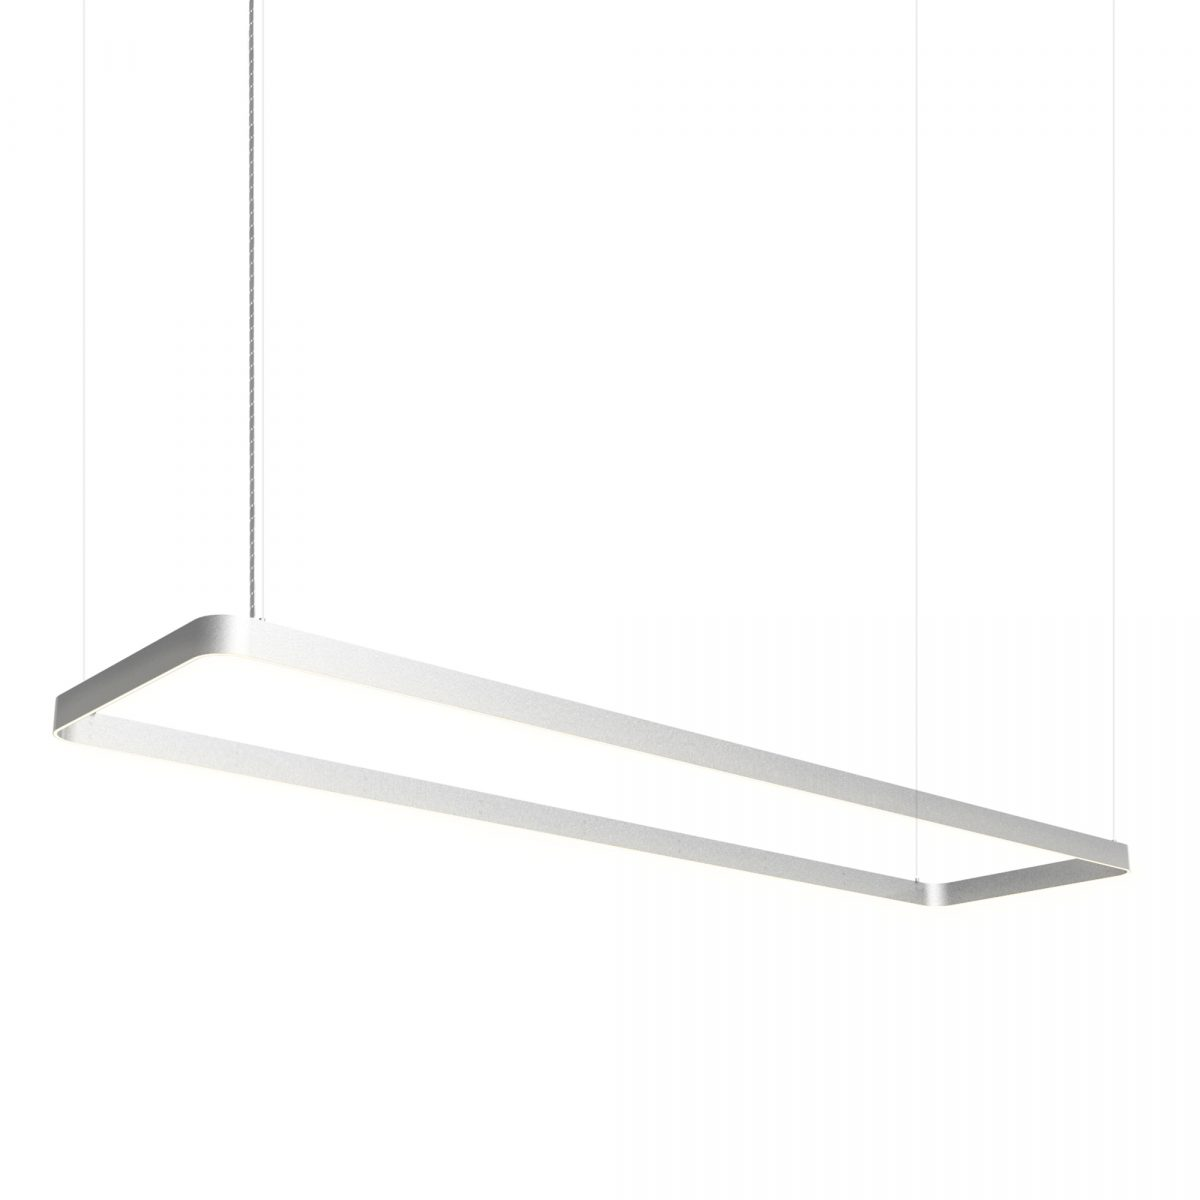 JSPR Eden 50×200 Silver Rectangle